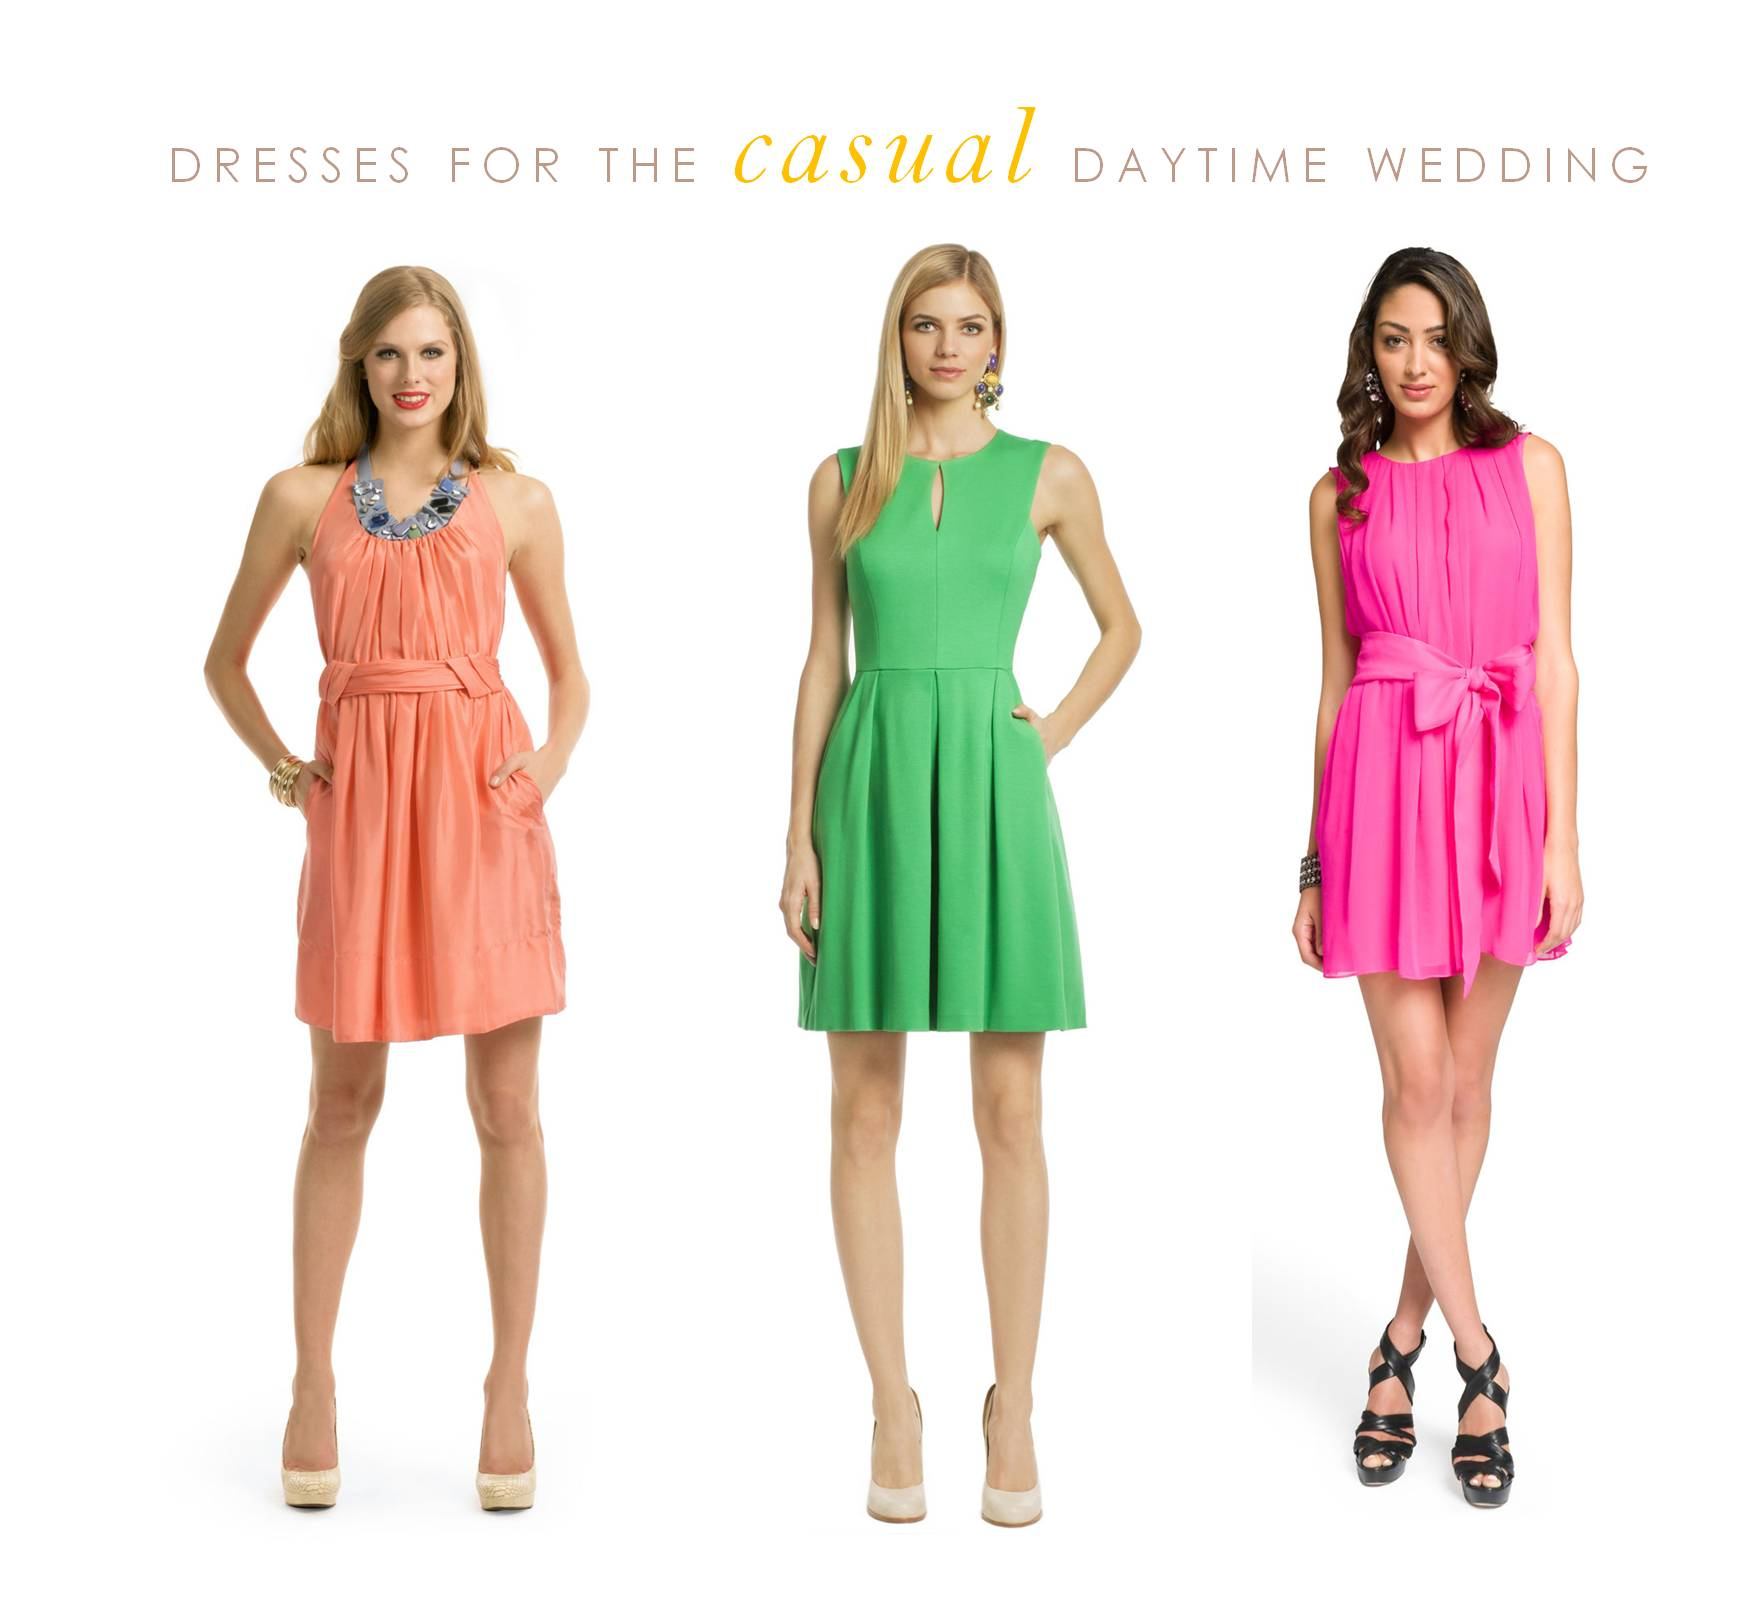 dresses for weddings august edition beach wedding guest dress